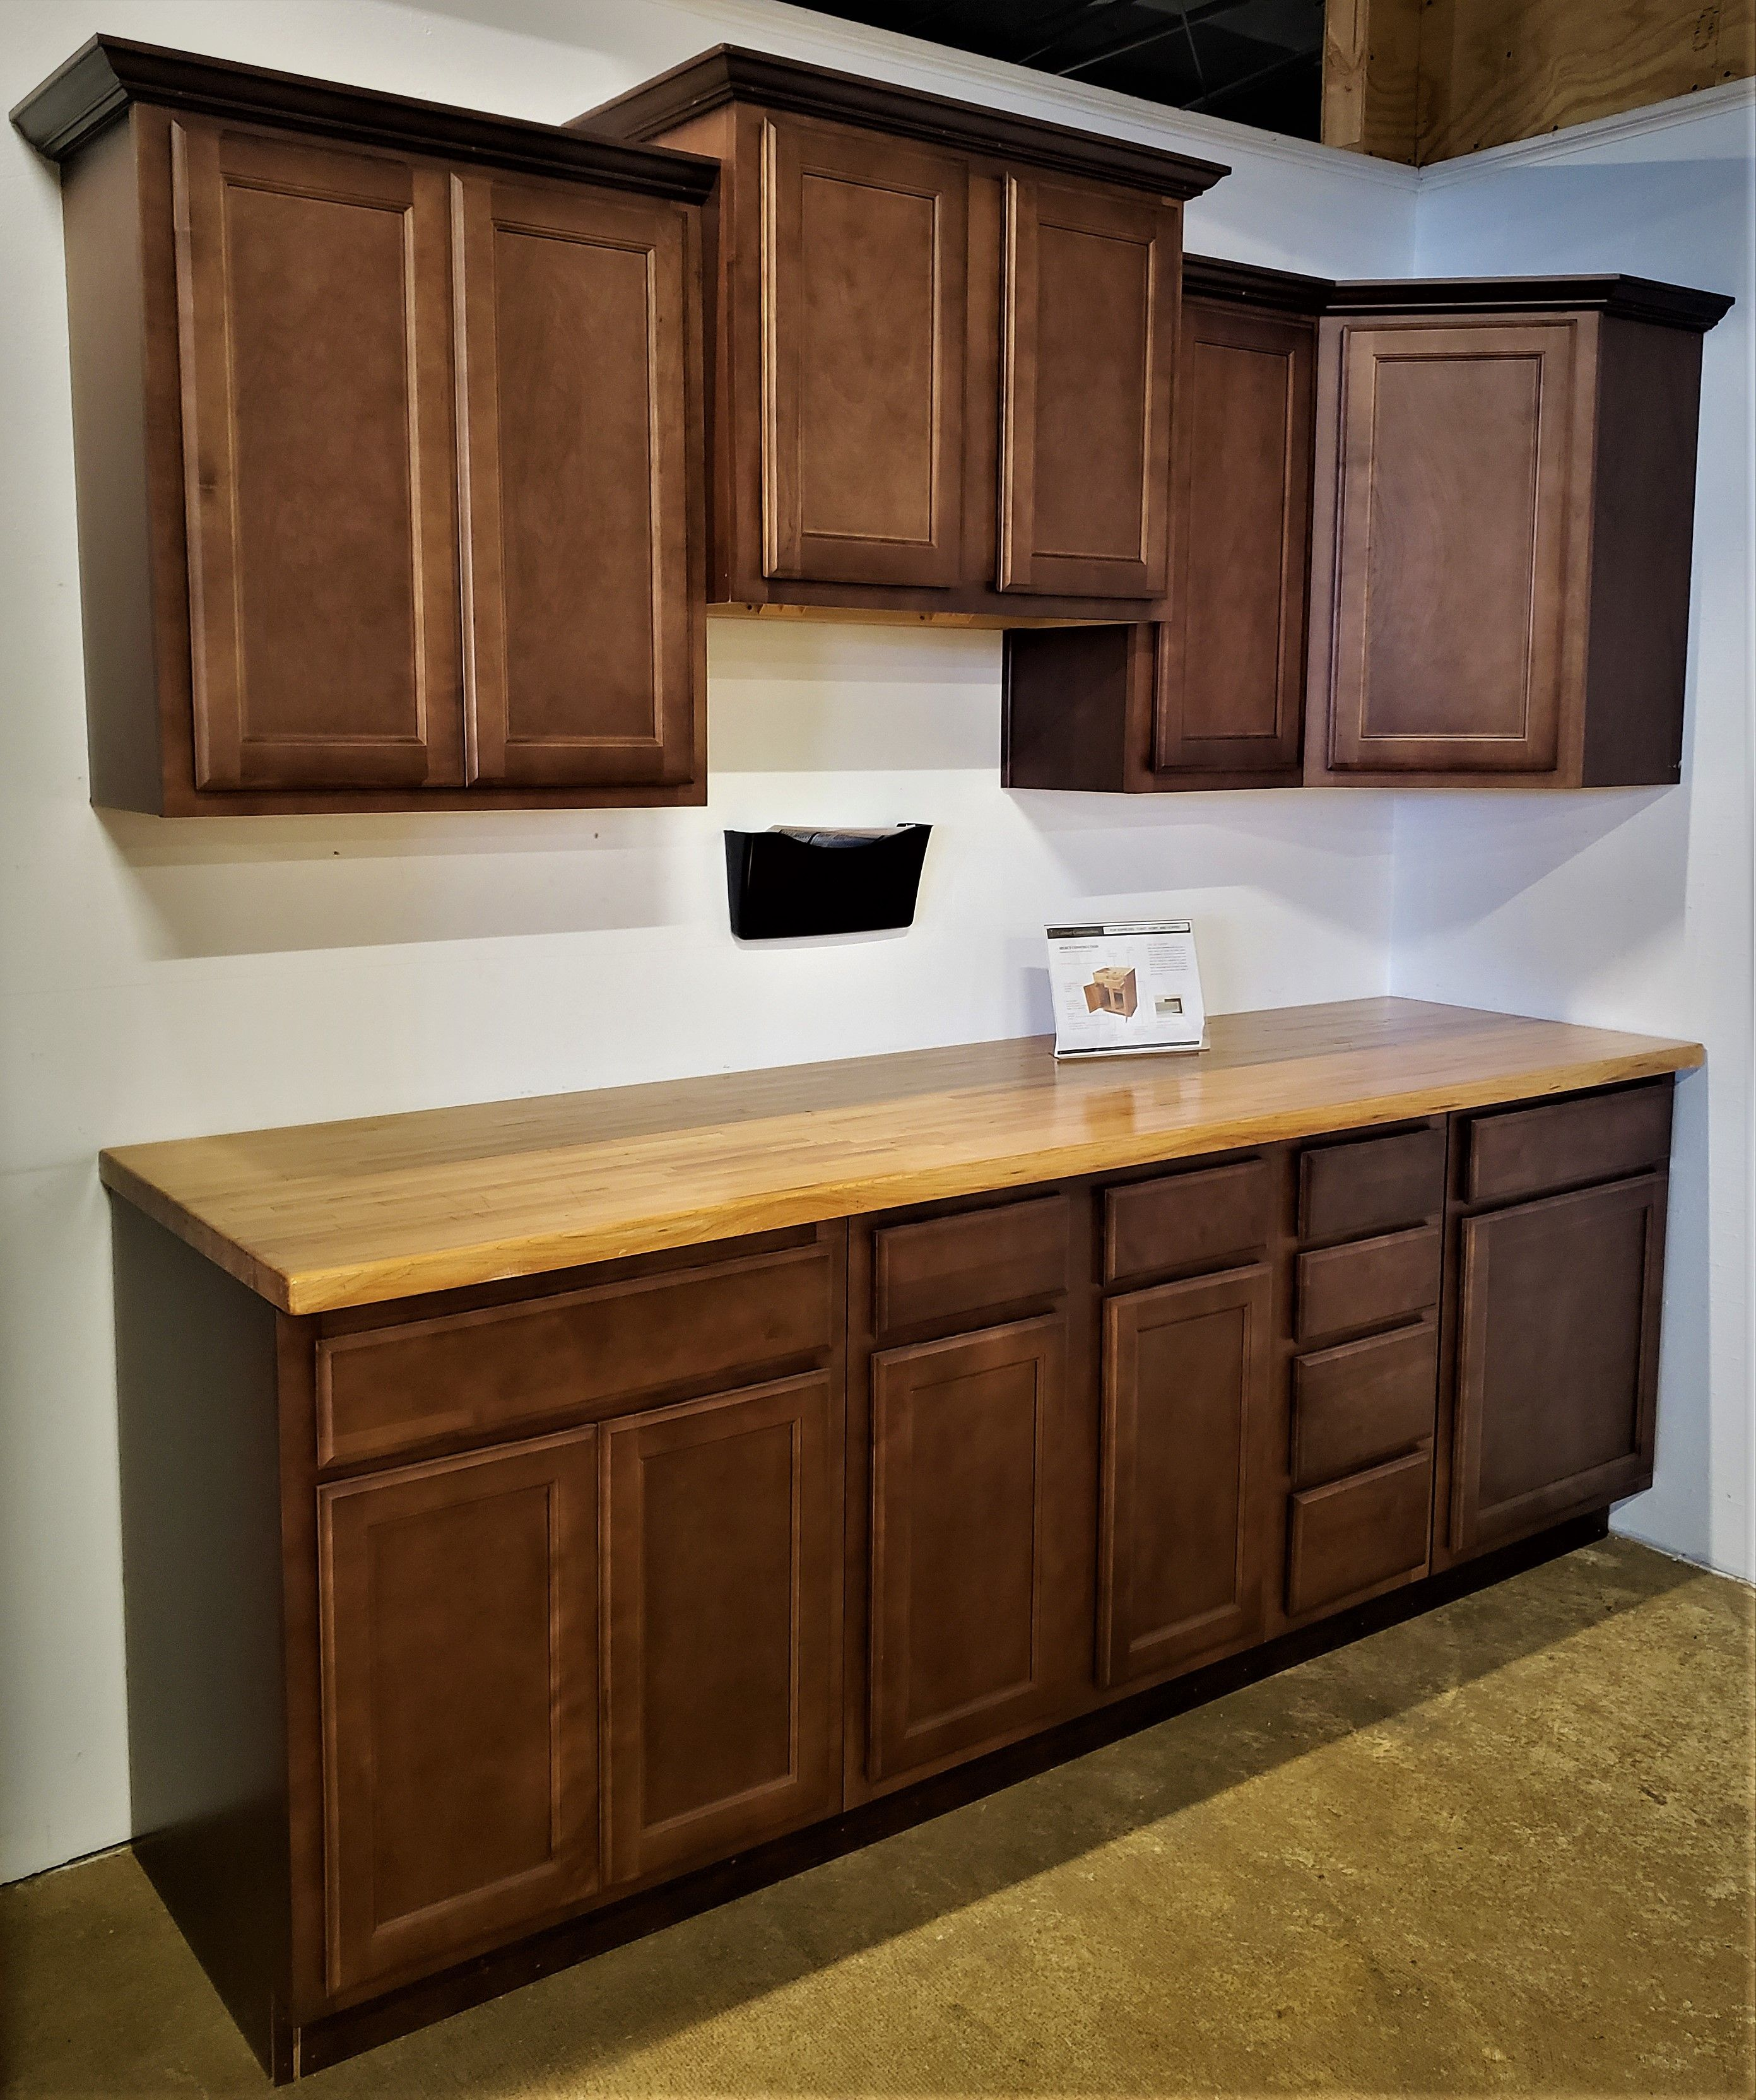 Get everything you need to remodel your kitchen here at ...